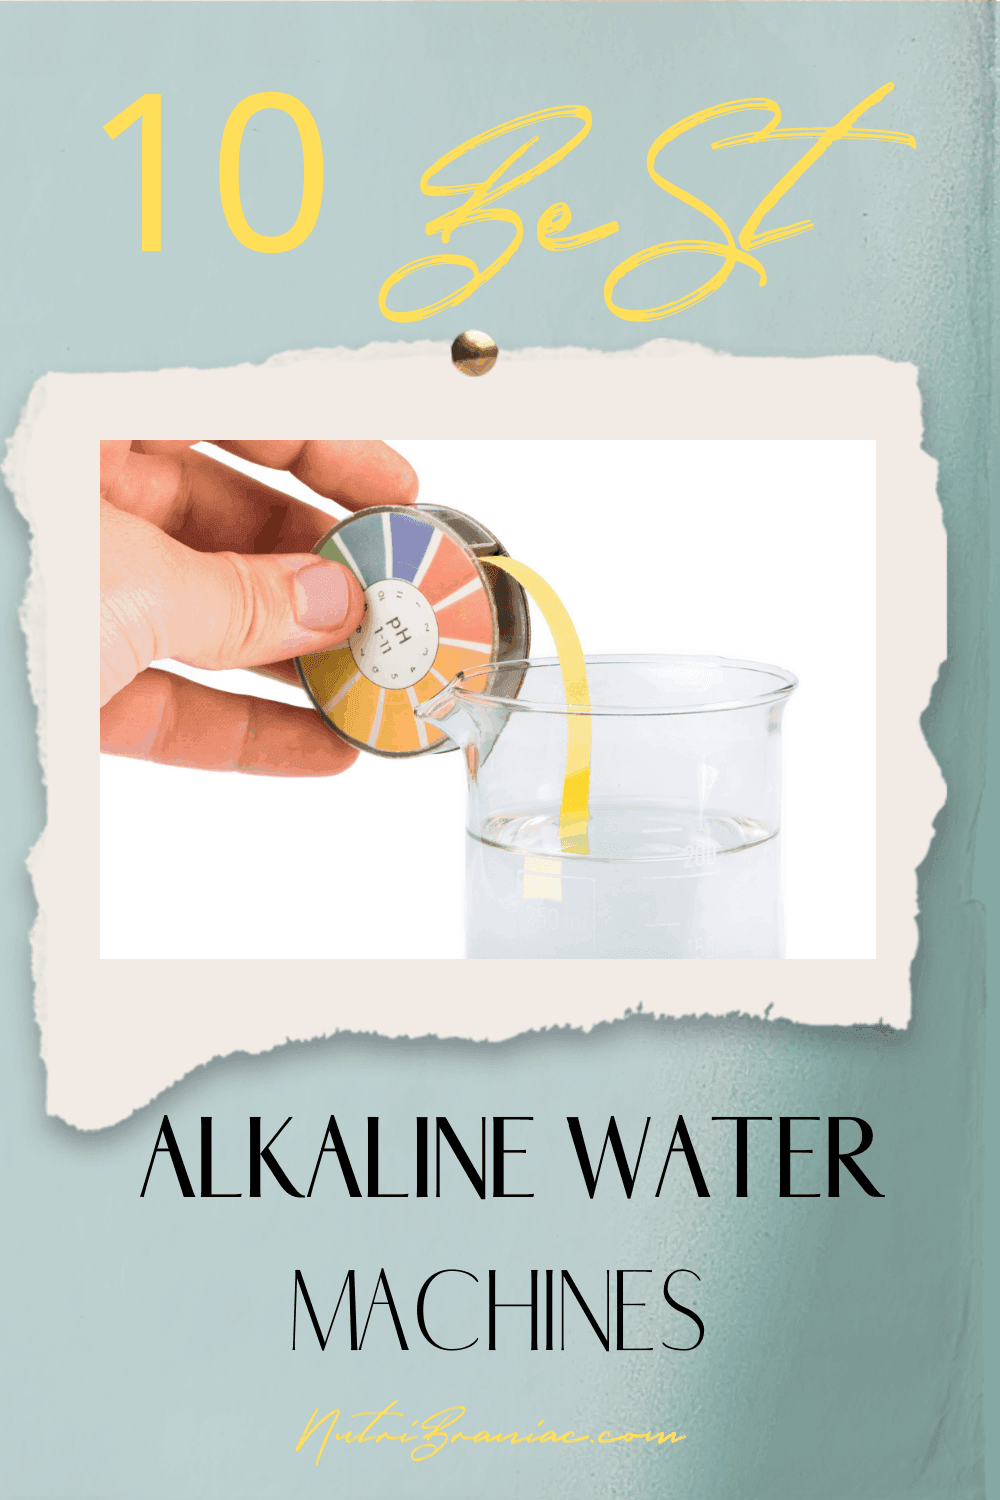 """Image of a ph test strip in a glass of water with text overlay """"10 Best Alkaline Water Machines"""""""